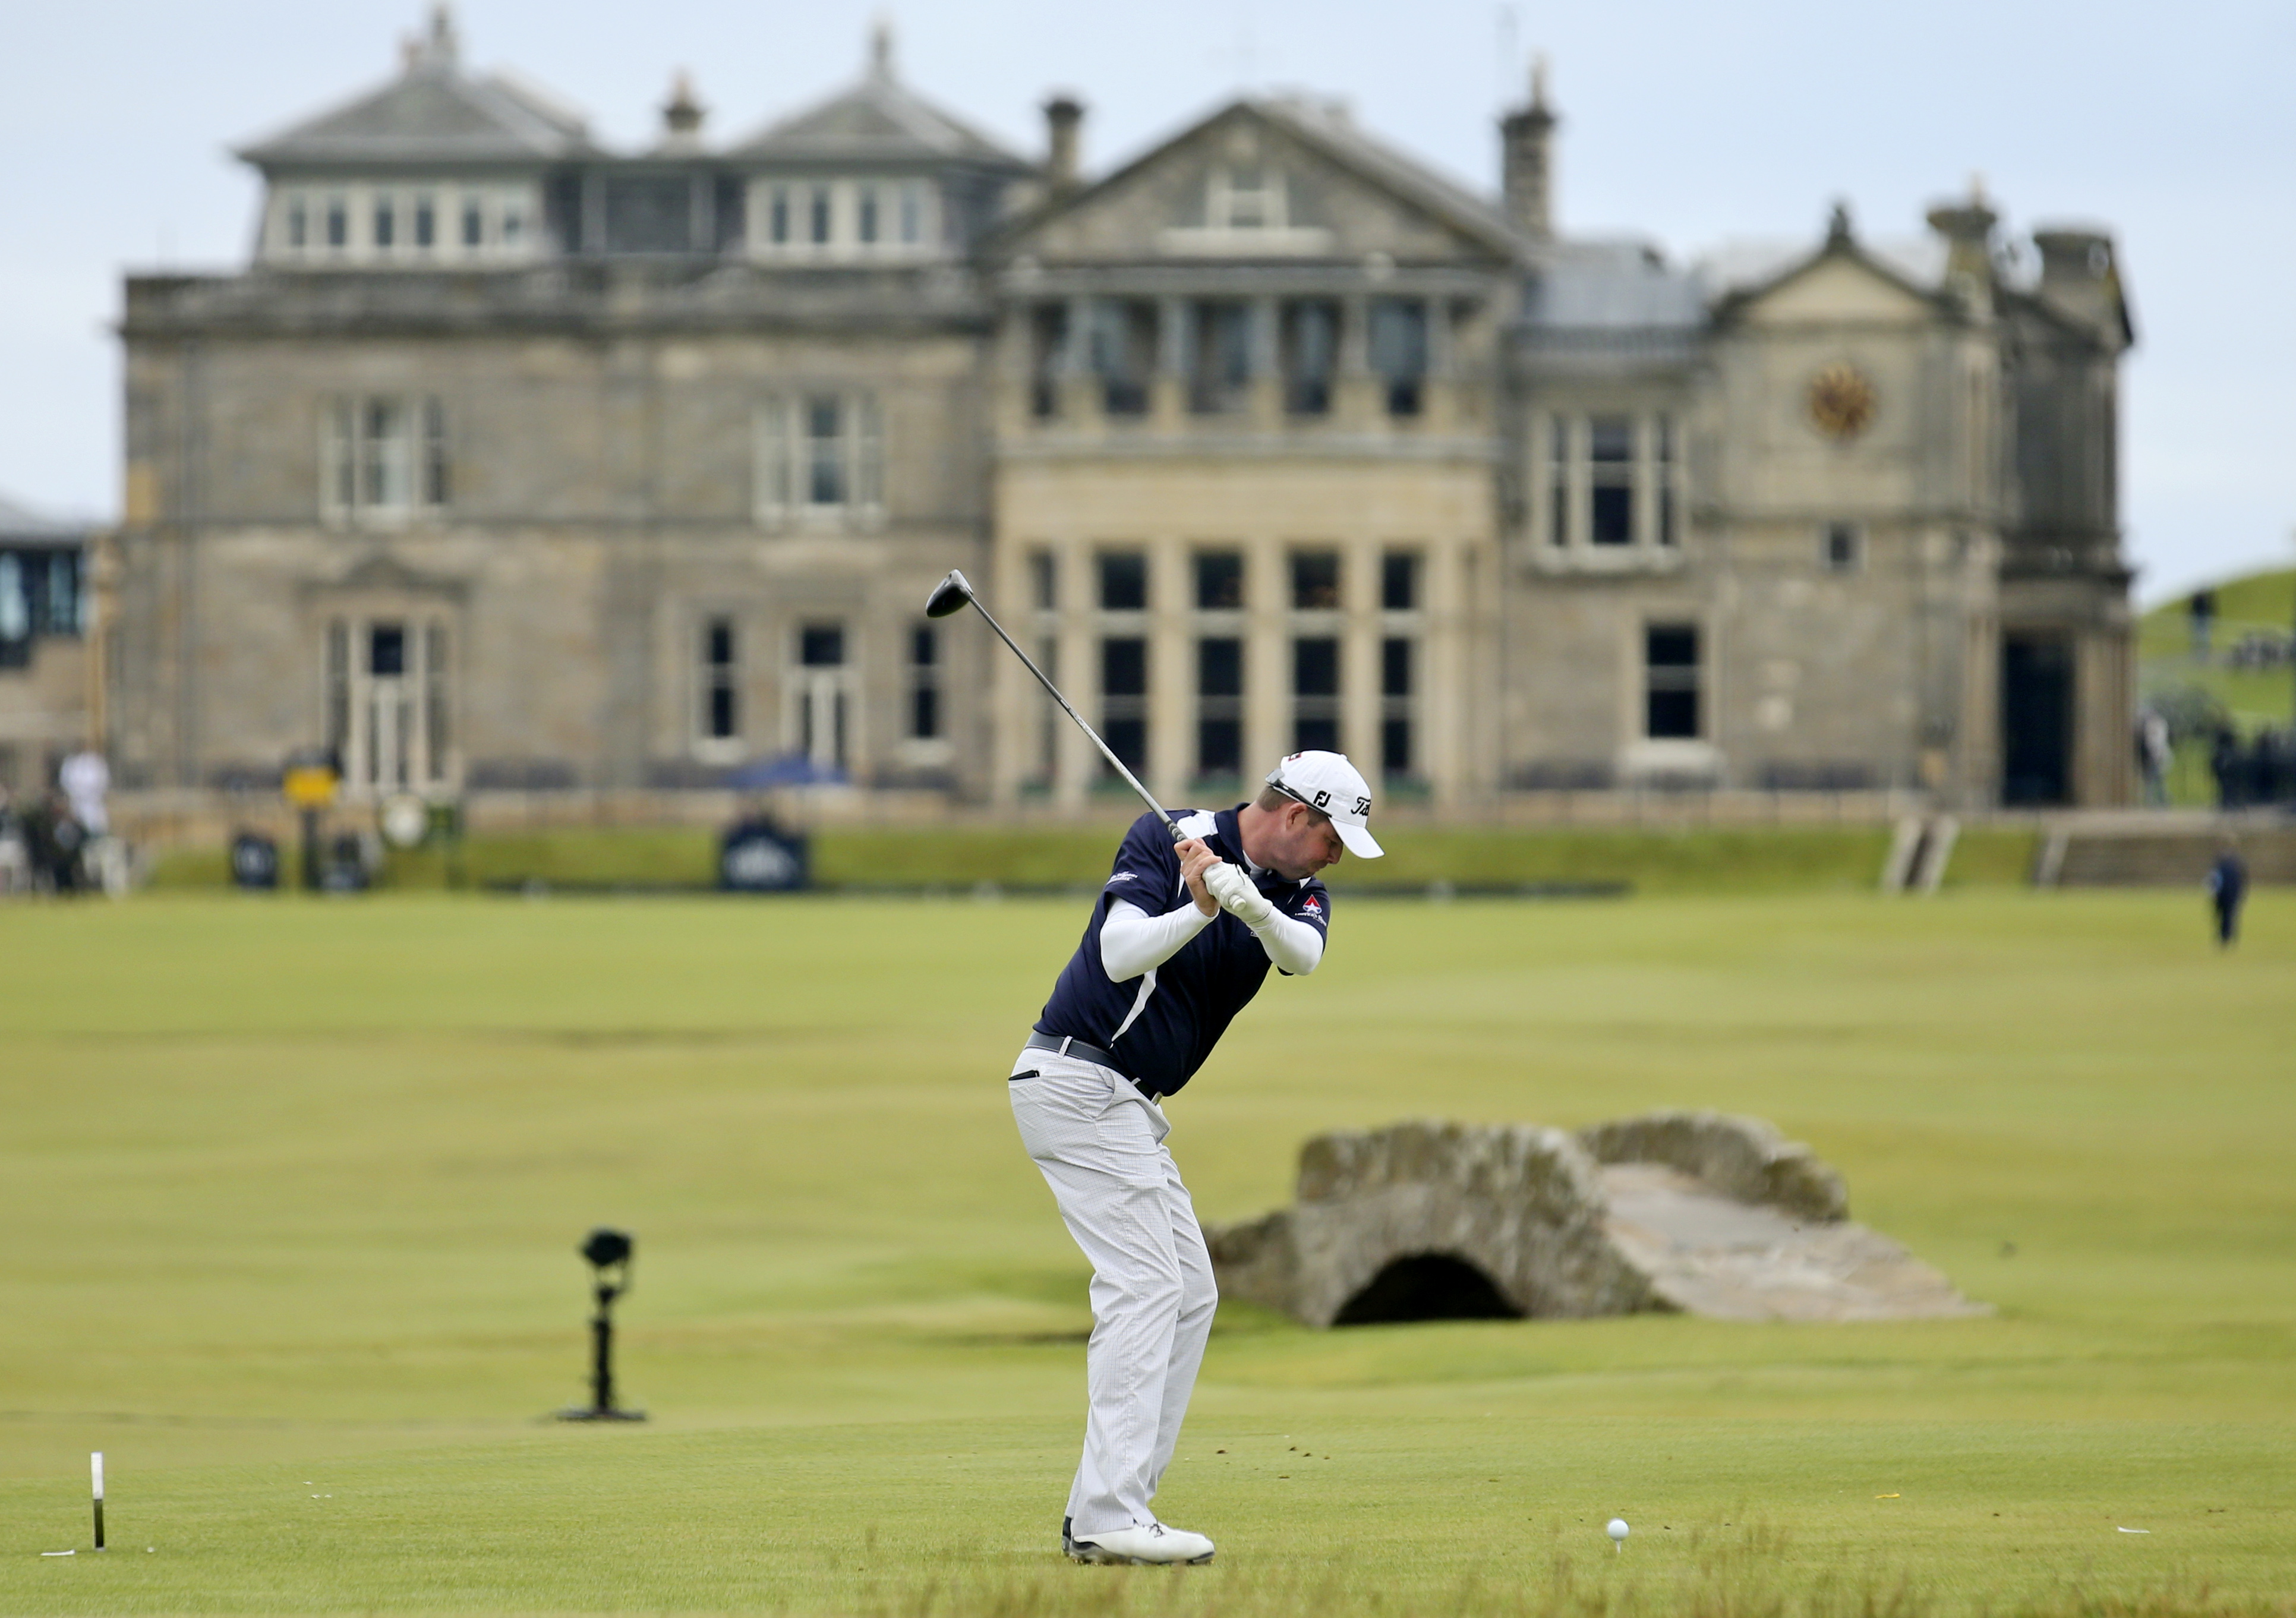 Australia's Marc Leishman plays from the 18th tee during the third round at the British Open Golf Championship at the Old Course, St. Andrews, Scotland, Sunday, July 19, 2015. (AP Photo/Peter Morrison)